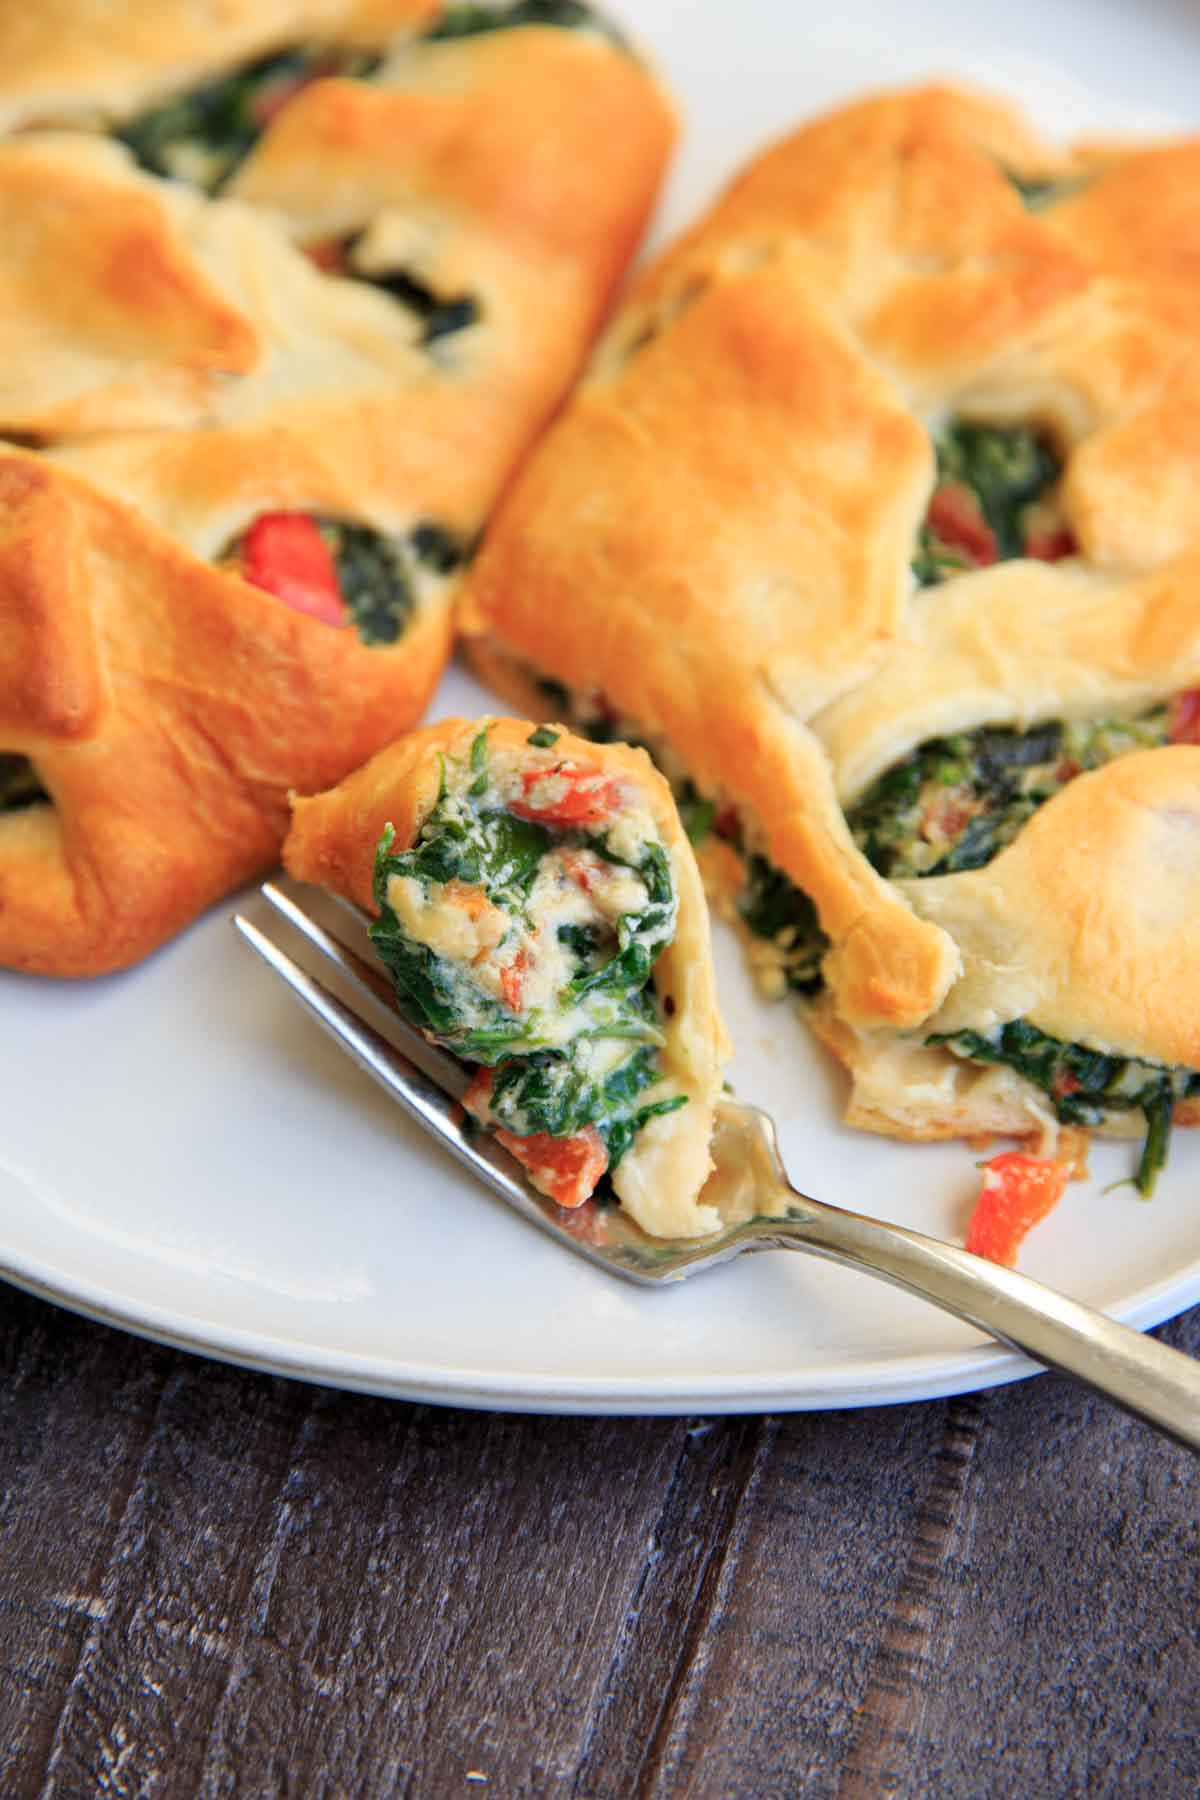 Spinach Ricotta Crescent Wrap cut in half with a bite on fork